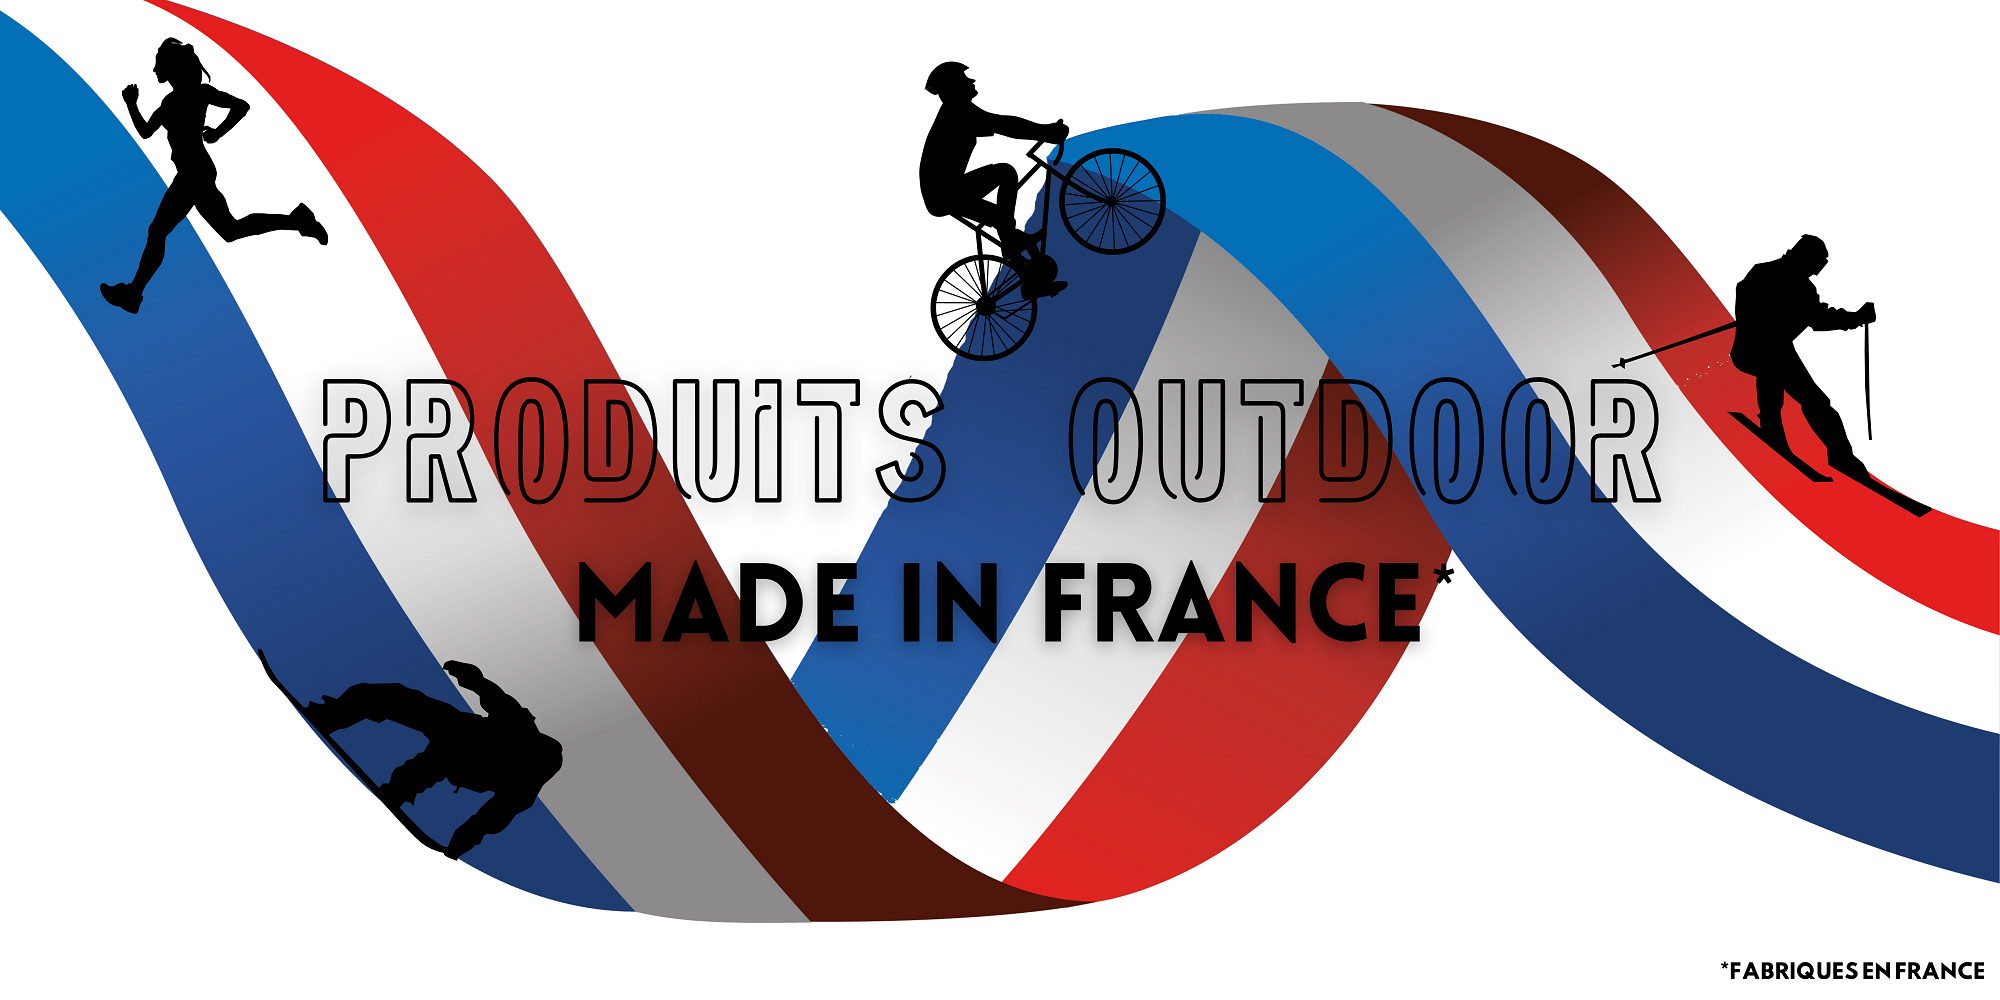 PRODUITS OUTDOOR MADE IN FRANCE